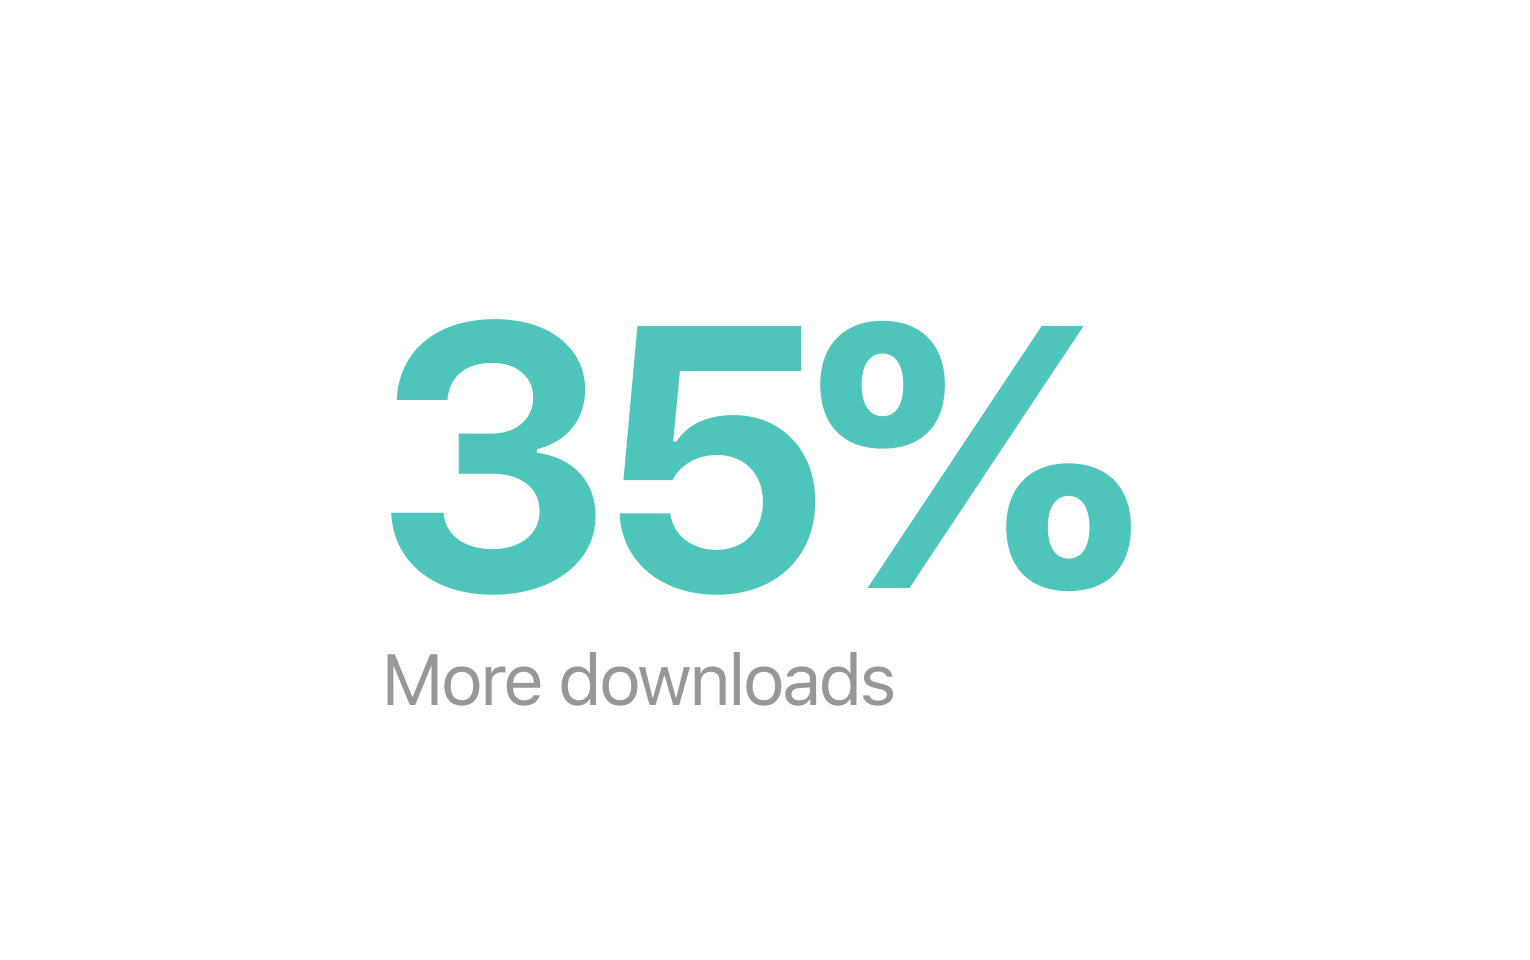 More downloads - A great first impression in the App Store and Google Play Store can increase app downloads by as much as 35%. We provide beautiful, done-for-you App Store screenshots that create more impact, save time, and eliminate costly mistakes.